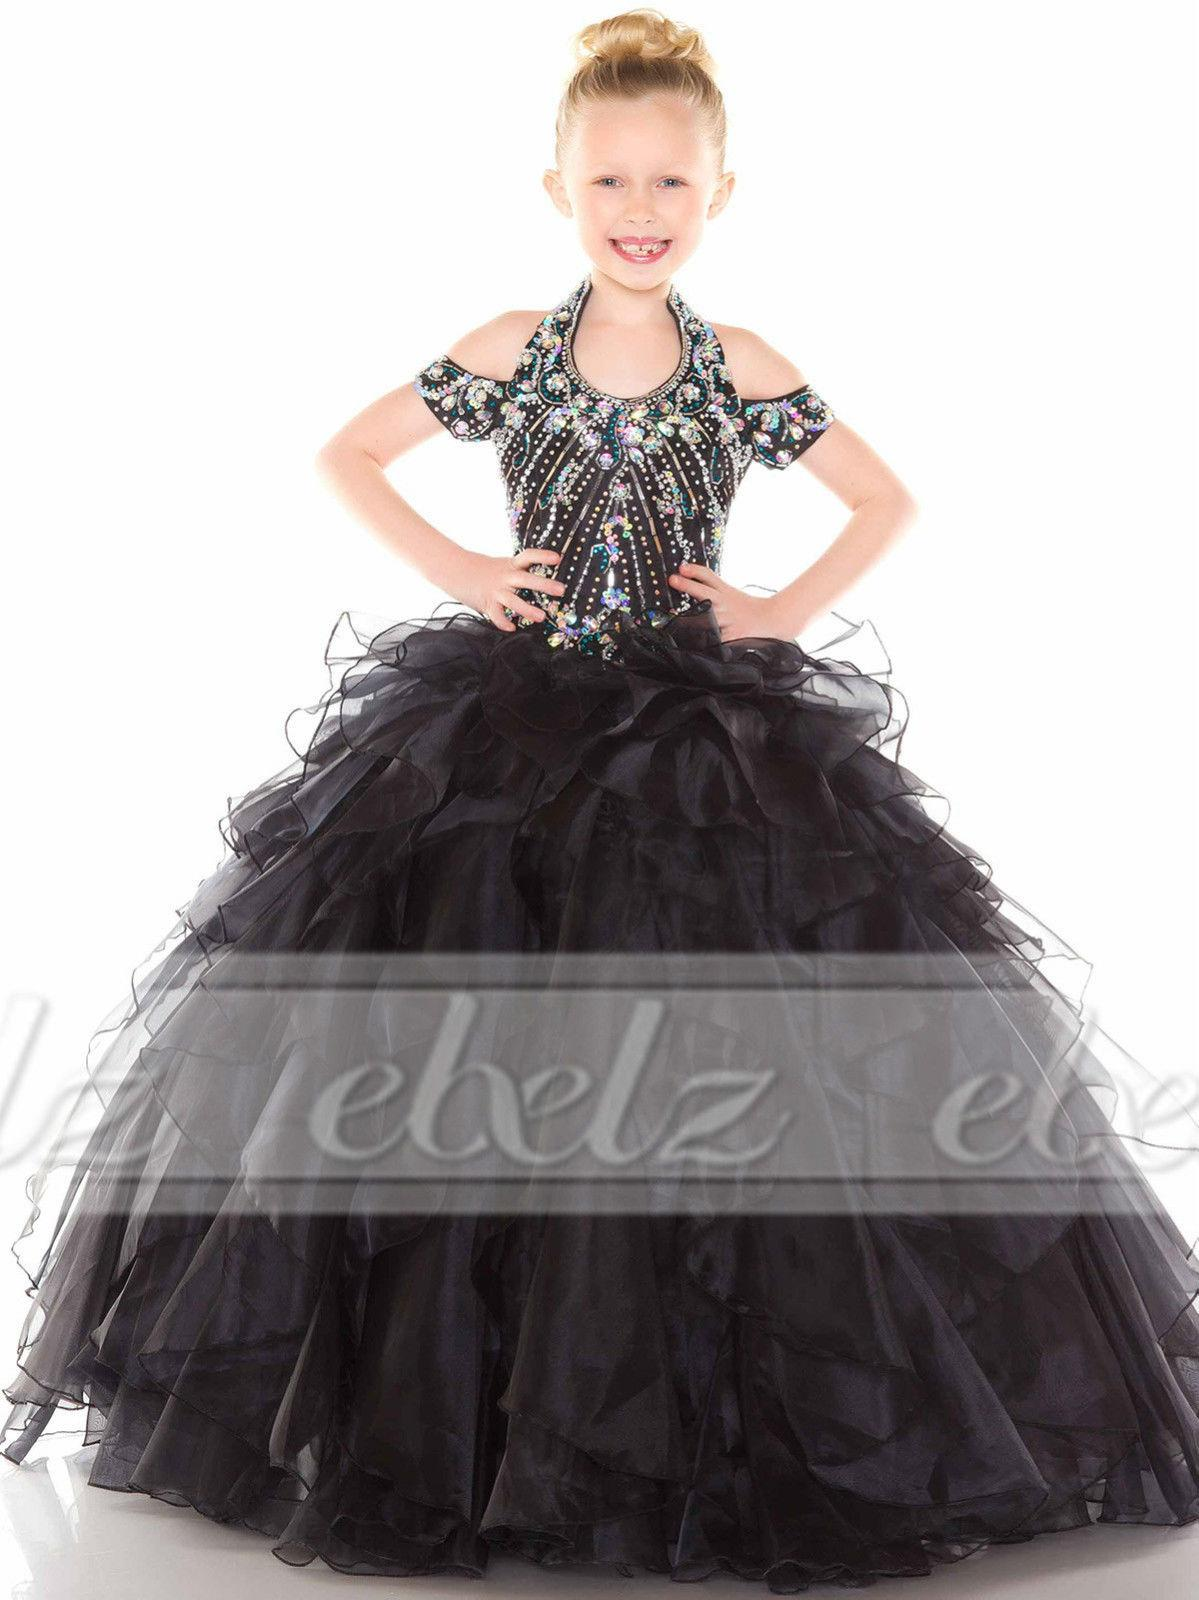 Wholesale 2015 new black flower girls kids wedding pageant party wholesale 2015 new black flower girls kids wedding pageant party dance dresses ball gowns cheap girls pageant dresses cheap glitz pageant dresses from junglespirit Image collections